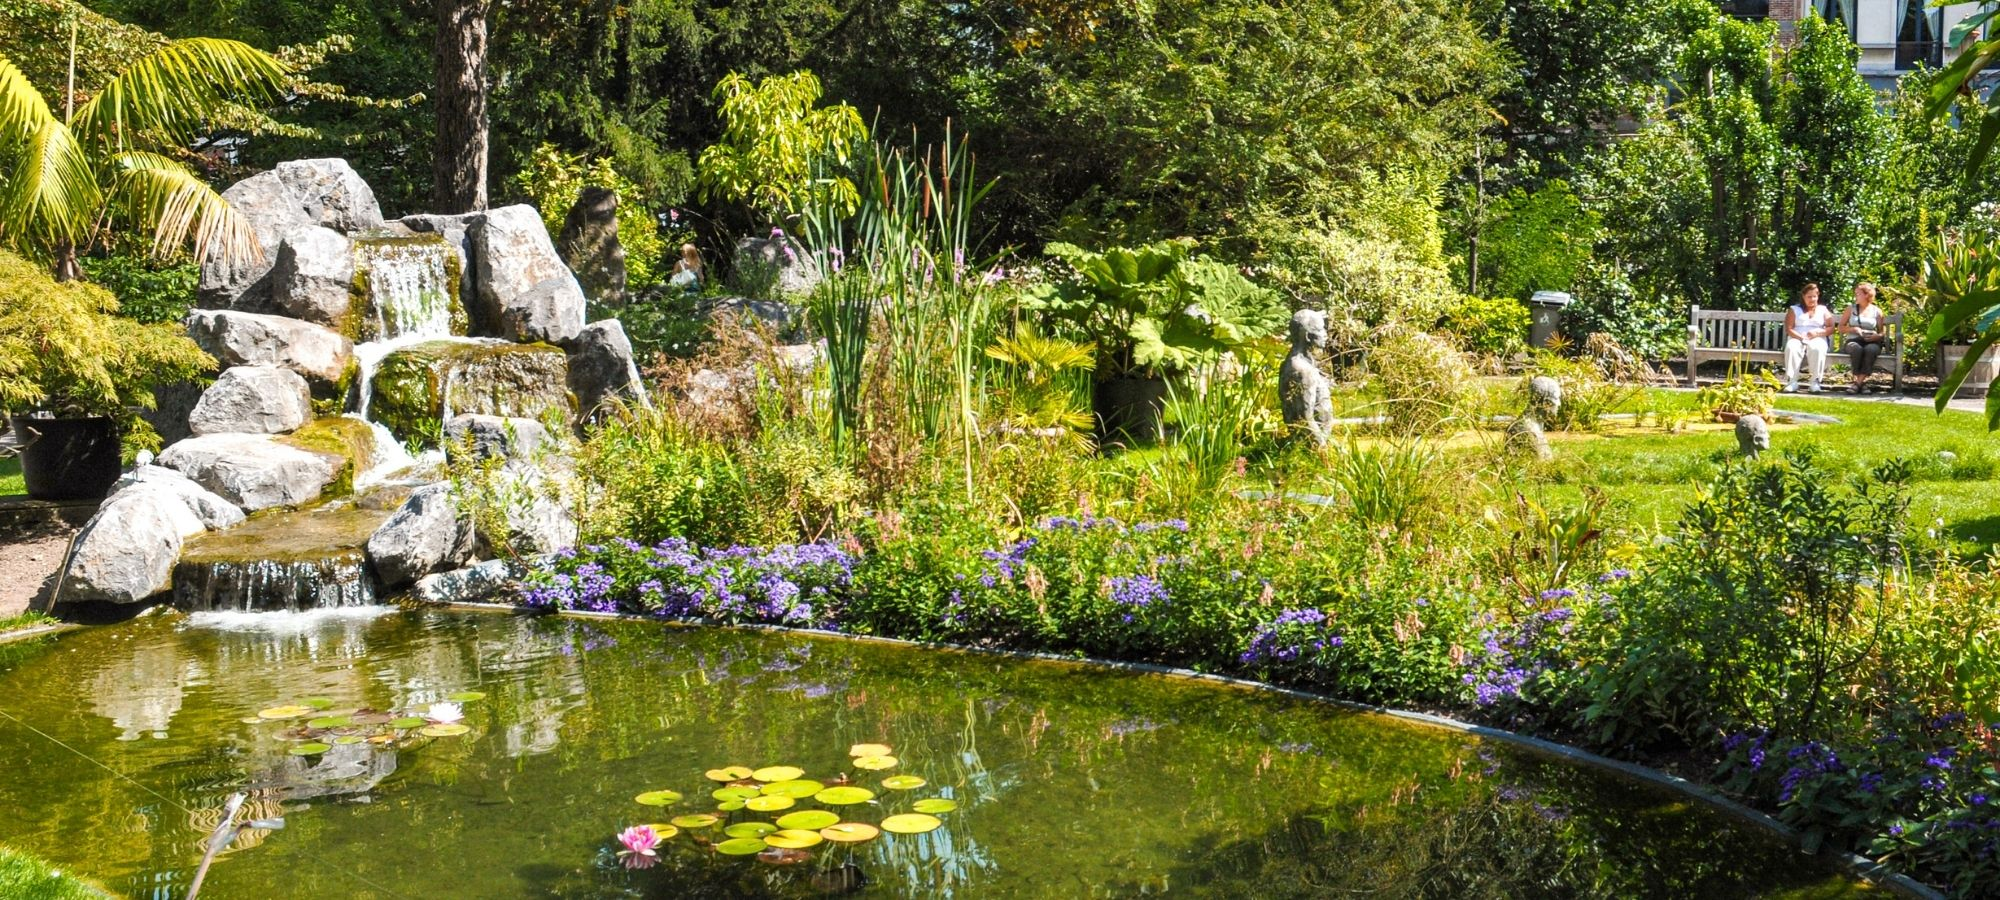 A small pond with a lily pad in the centre and a mini waterfall feature at the top in Plantentuin, Antwerp